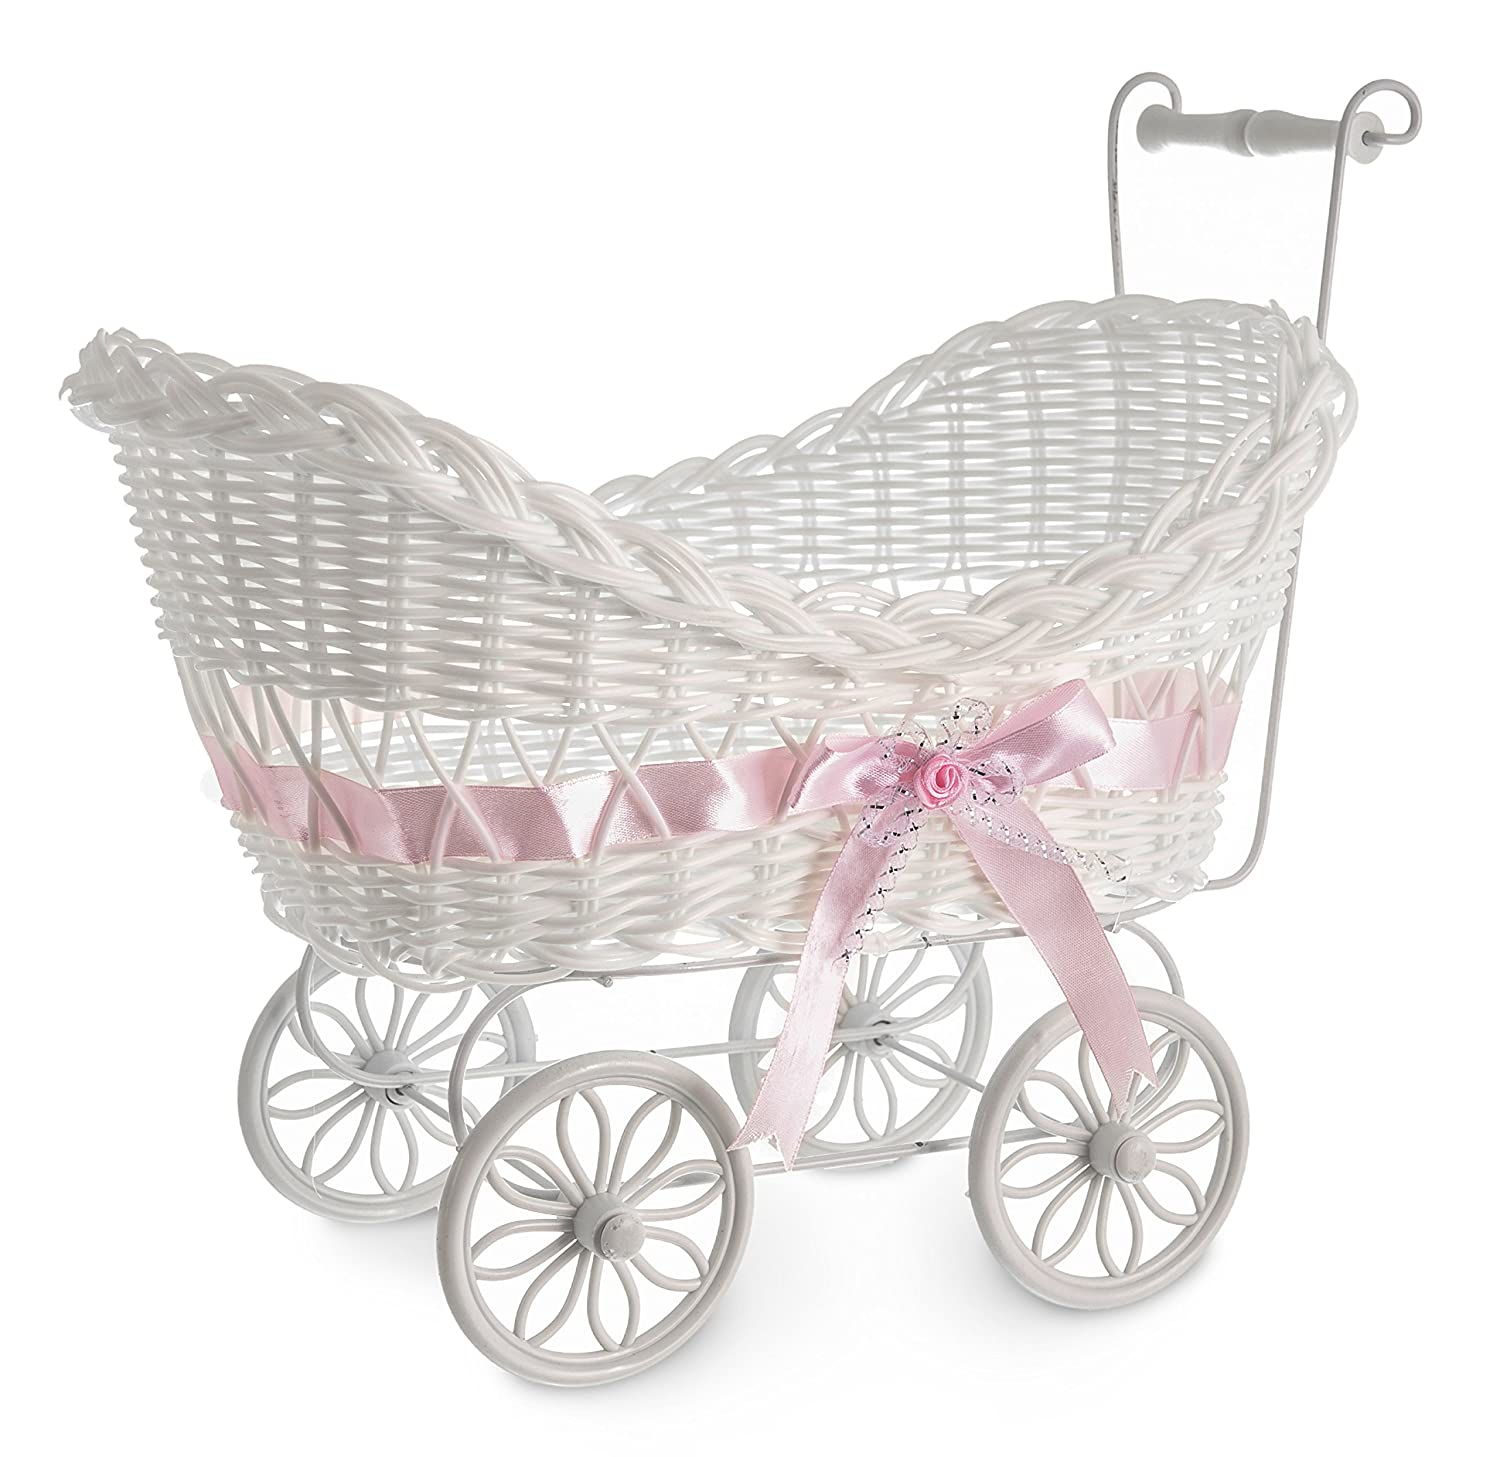 LIVIVO White Baby Pram Wicker Hamper Basket with Handles, Wheels and Colourful Satin Ribbon Bow - Perfect for Baby Showers or Newborn Baby Gifts - Beautiful and Stylish Multipurpose Baskets can also be used for Storage or Decoration in Any Room in the Hom